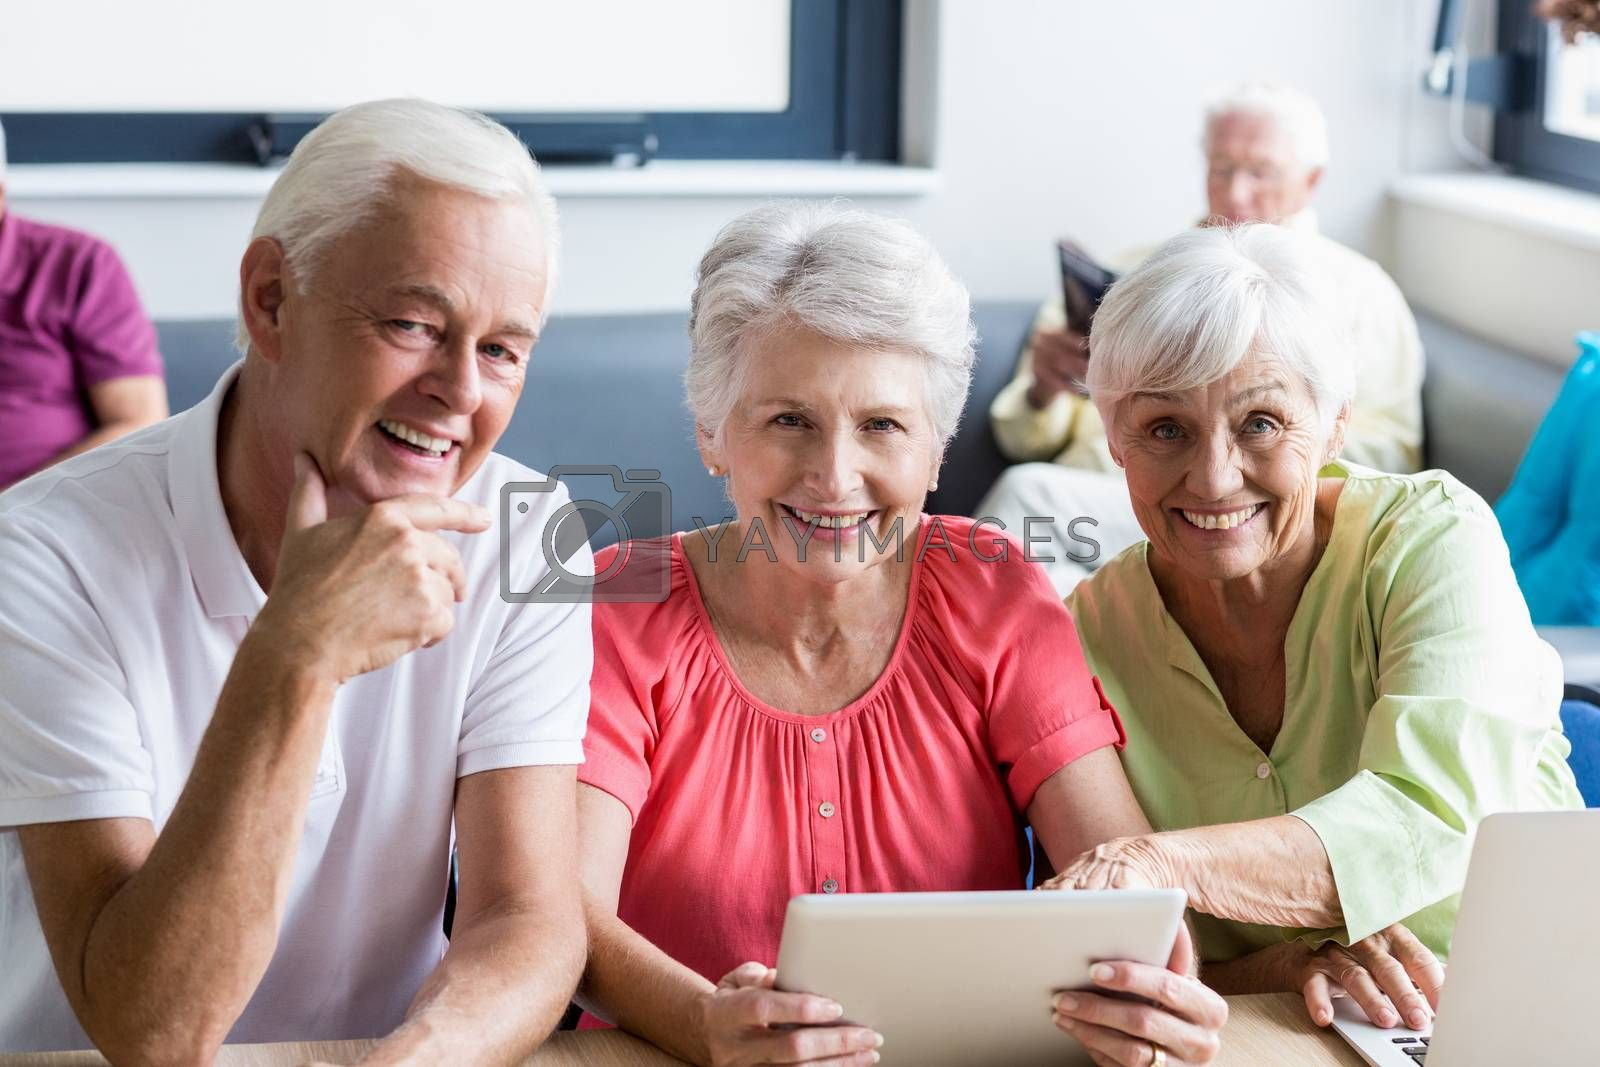 Seniors using technology in a retirement home